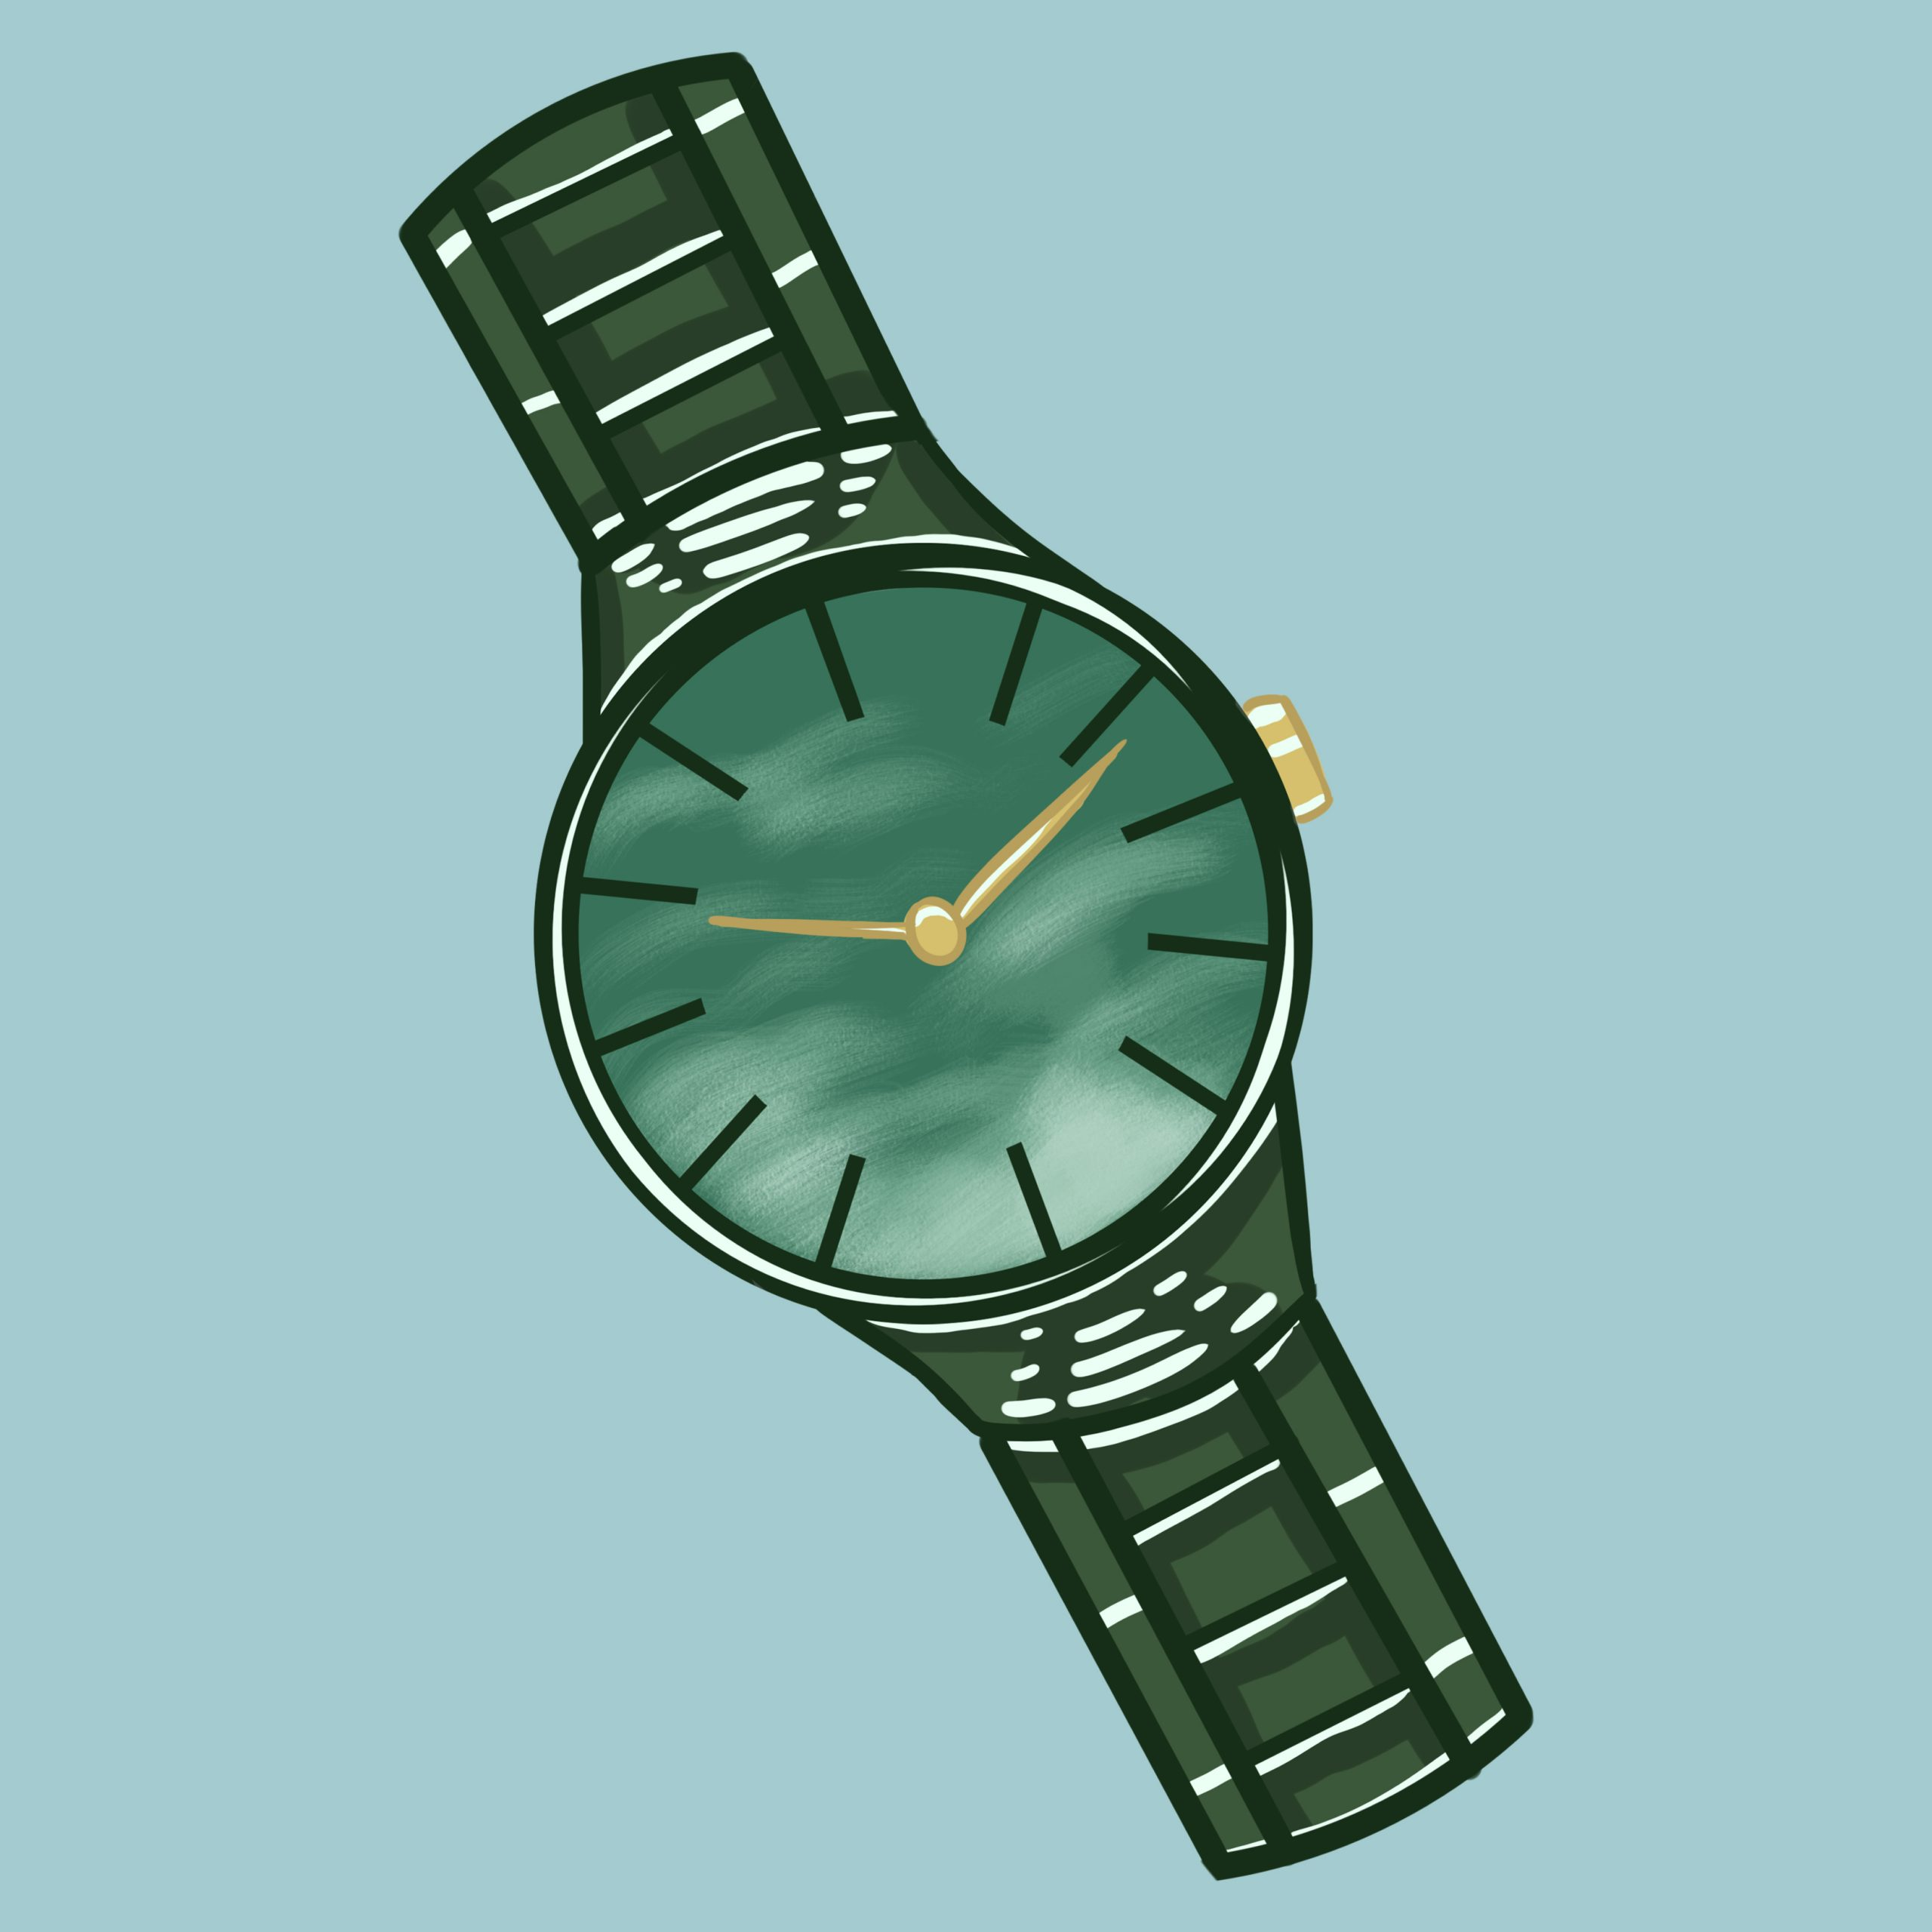 Allison Christensen illustrates a watch for 360 Magazine